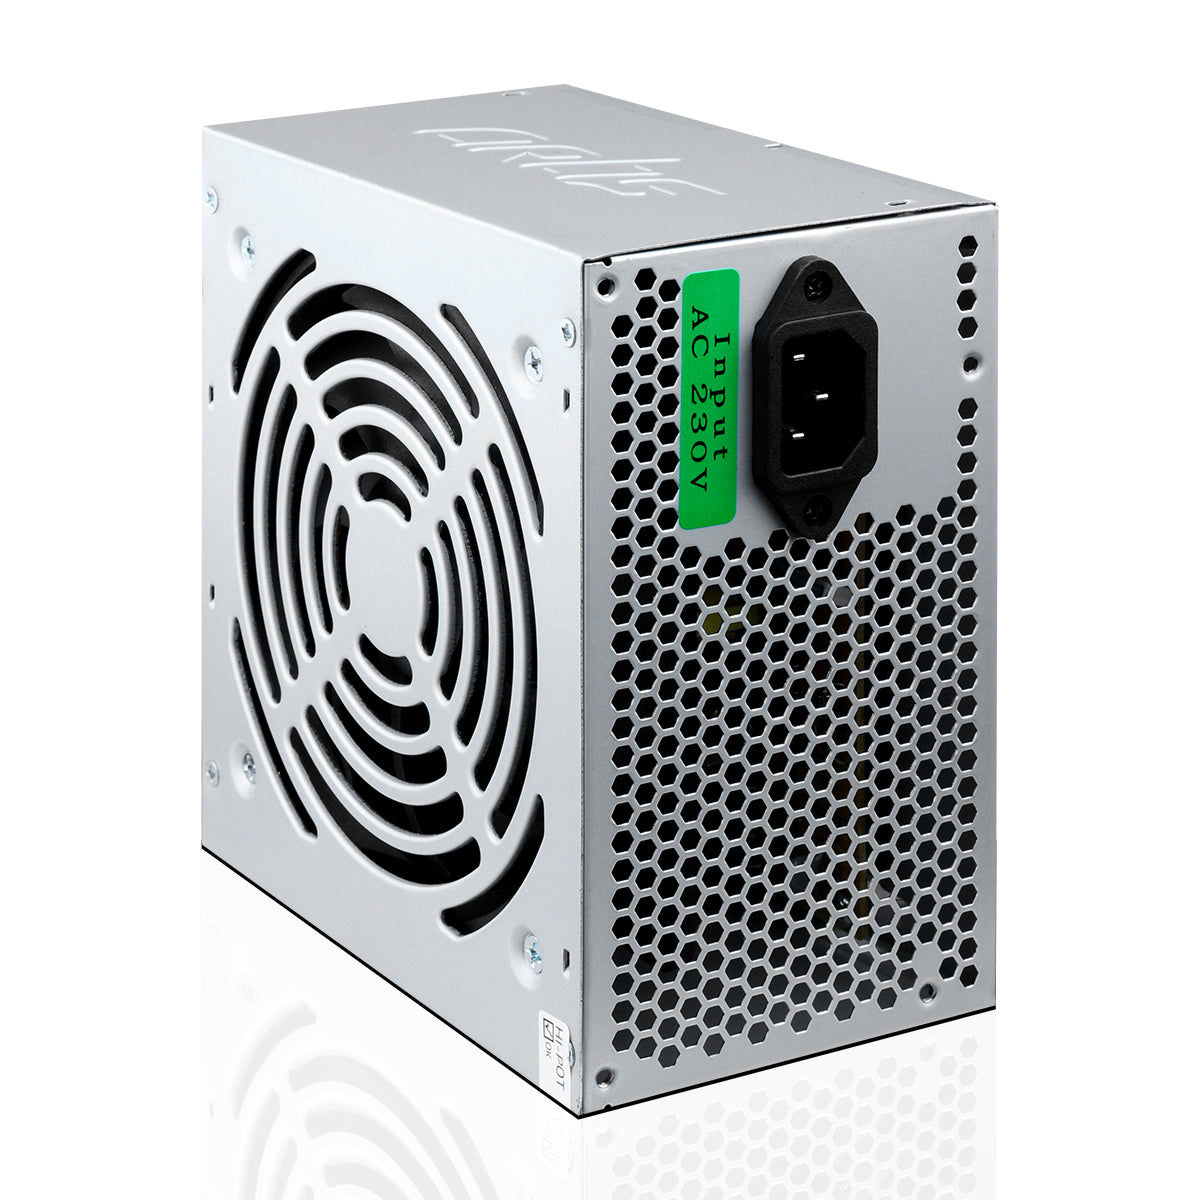 400R12 Plus 400W SMPS Power Supply Unit (Silver)